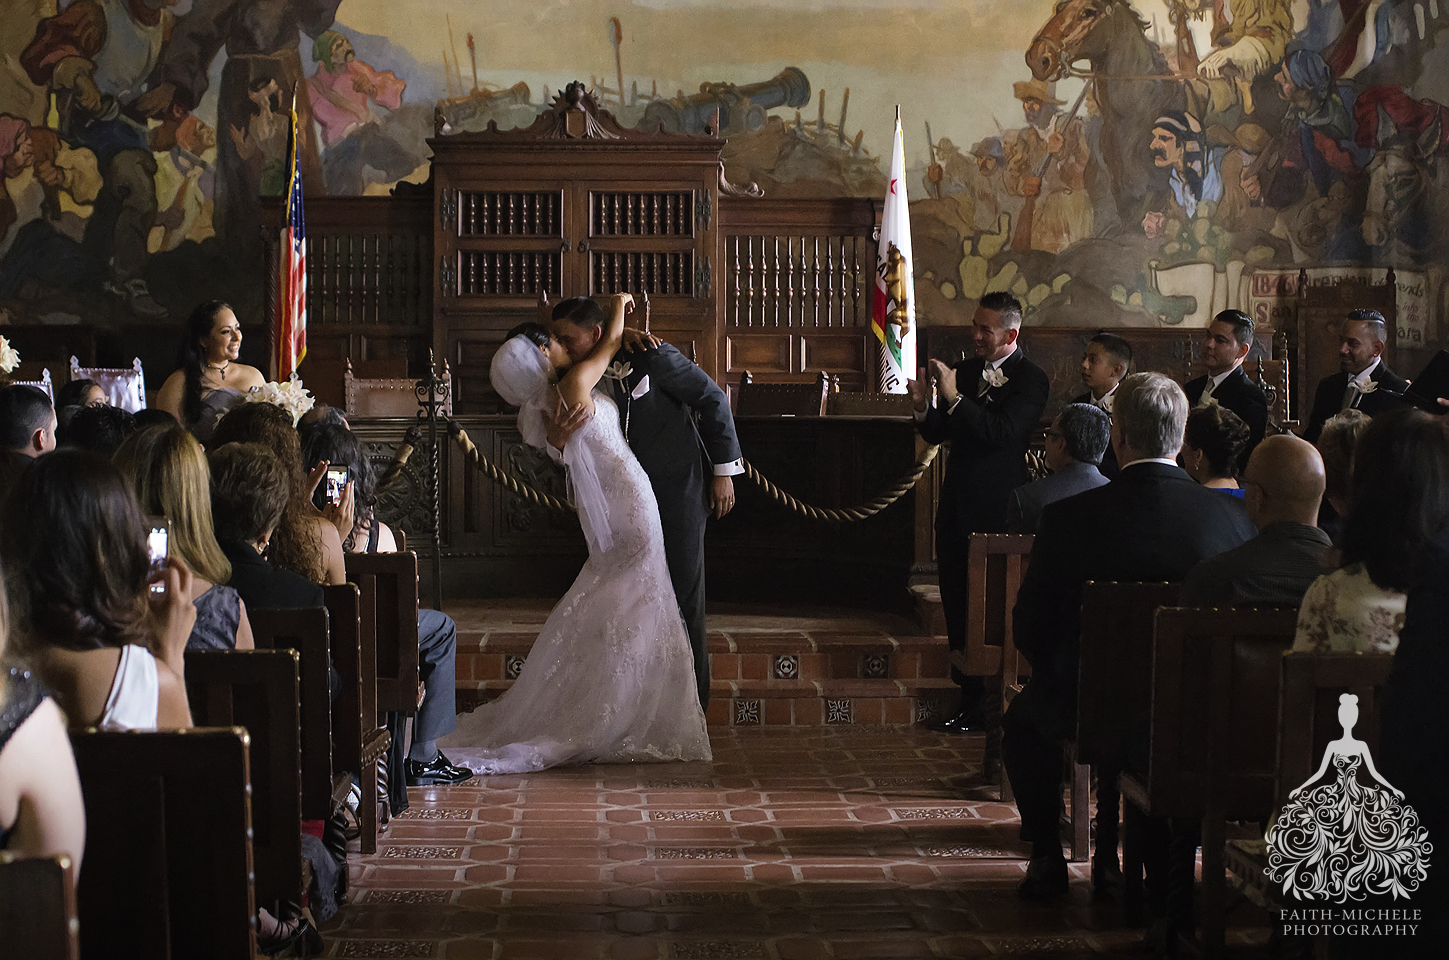 Santa barbara courthouse wedding for Mural room santa barbara